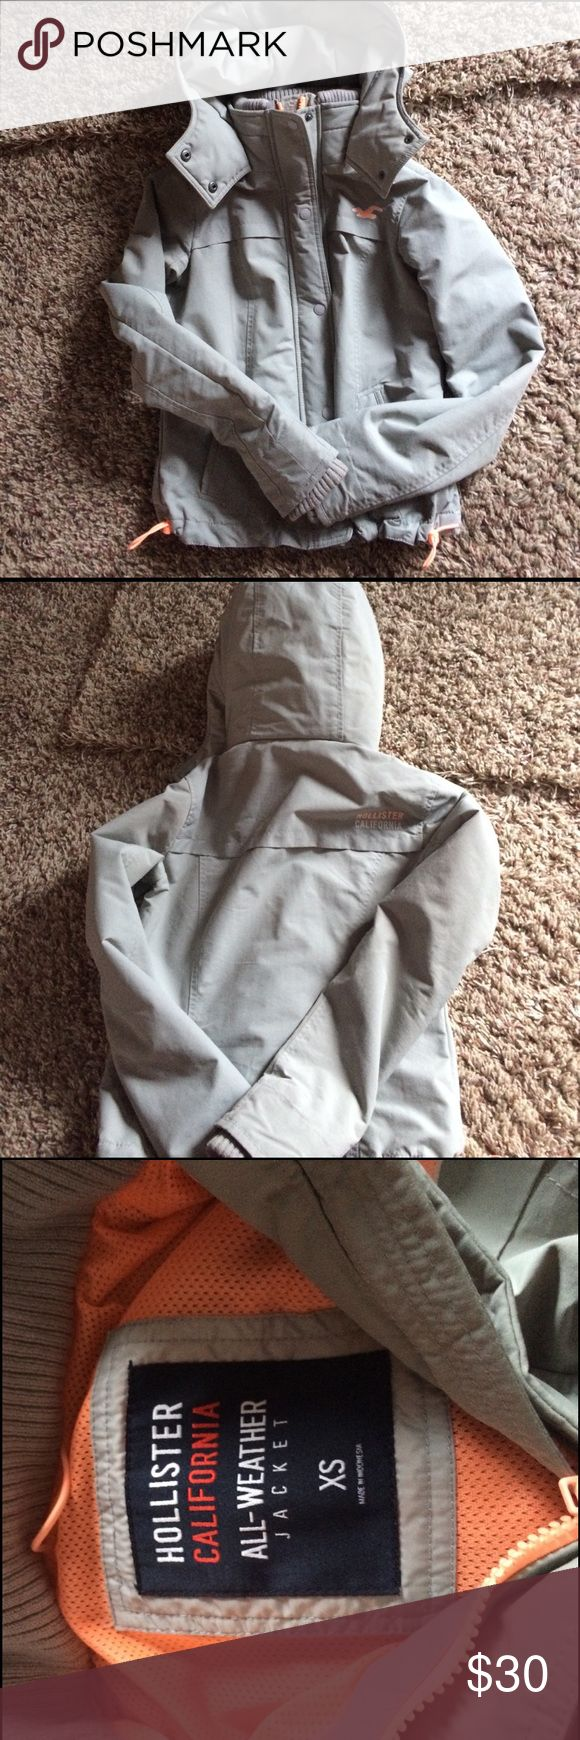 Light grey hollister jacket All weather jacket. Size xs. Light grey with a bright orange inner lining. Hollister Jackets & Coats